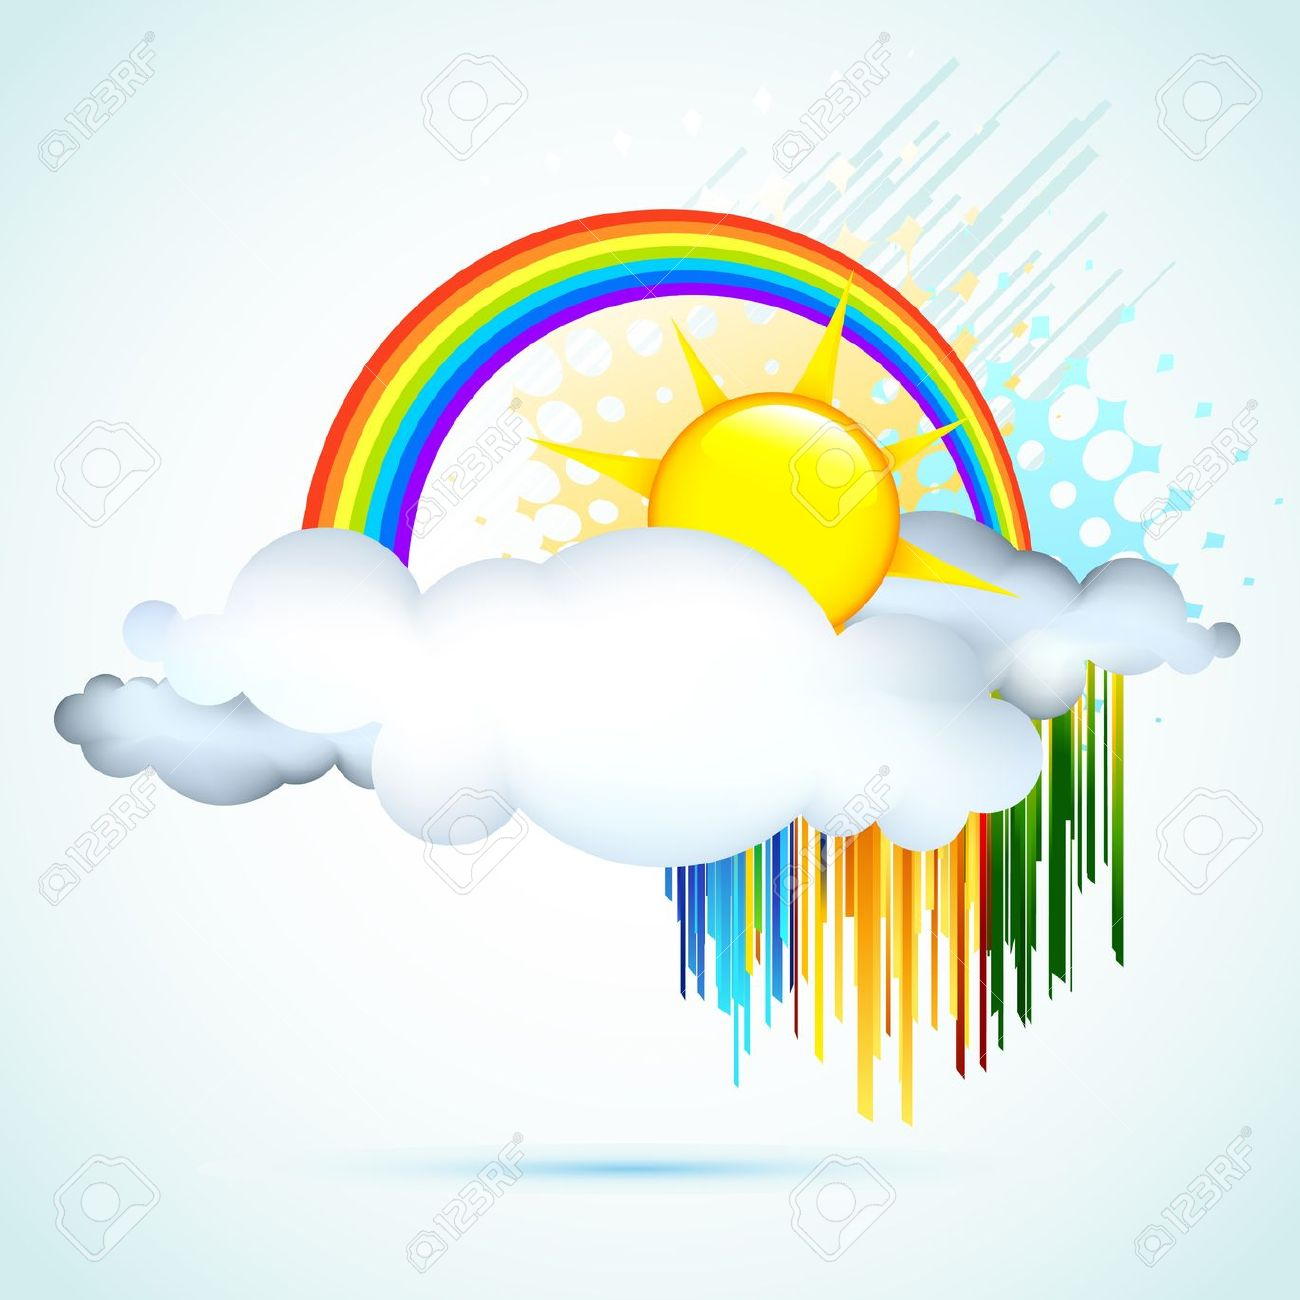 Illustration Of Sun In Clouds With Rainbow In Sky Royalty Free.